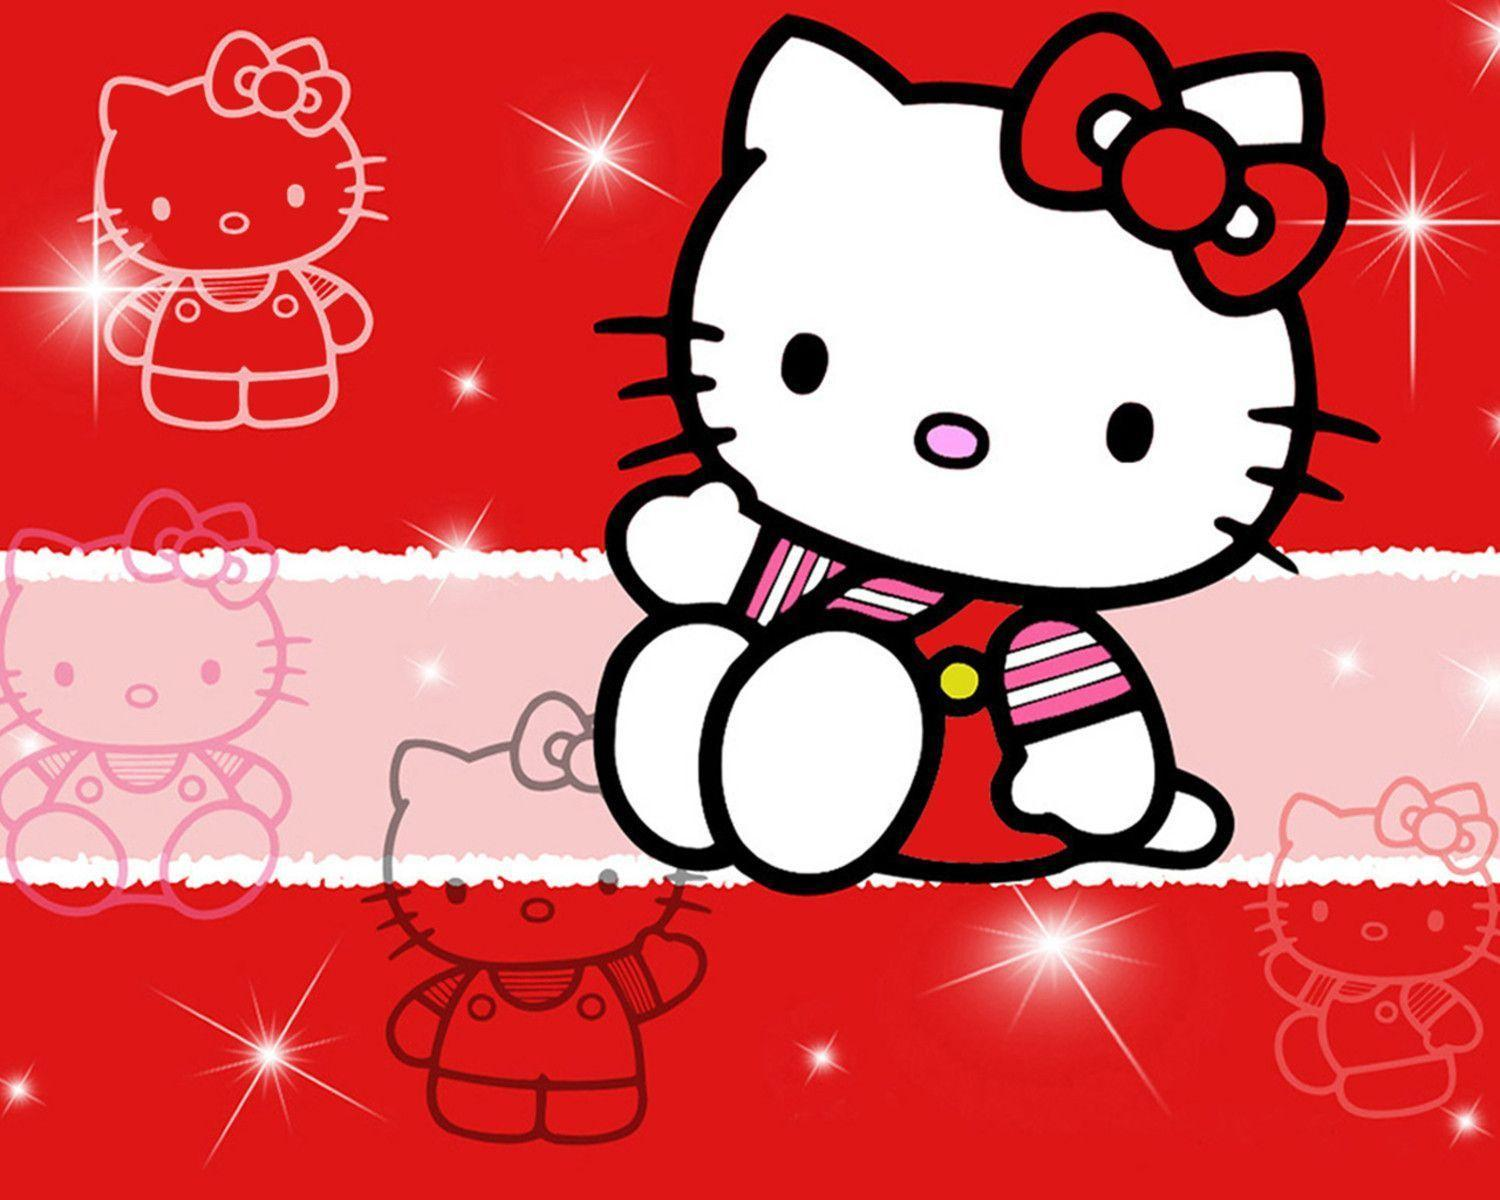 Good Wallpaper Hello Kitty Thanksgiving - 4sxqRJJ  Pic_238128.jpg